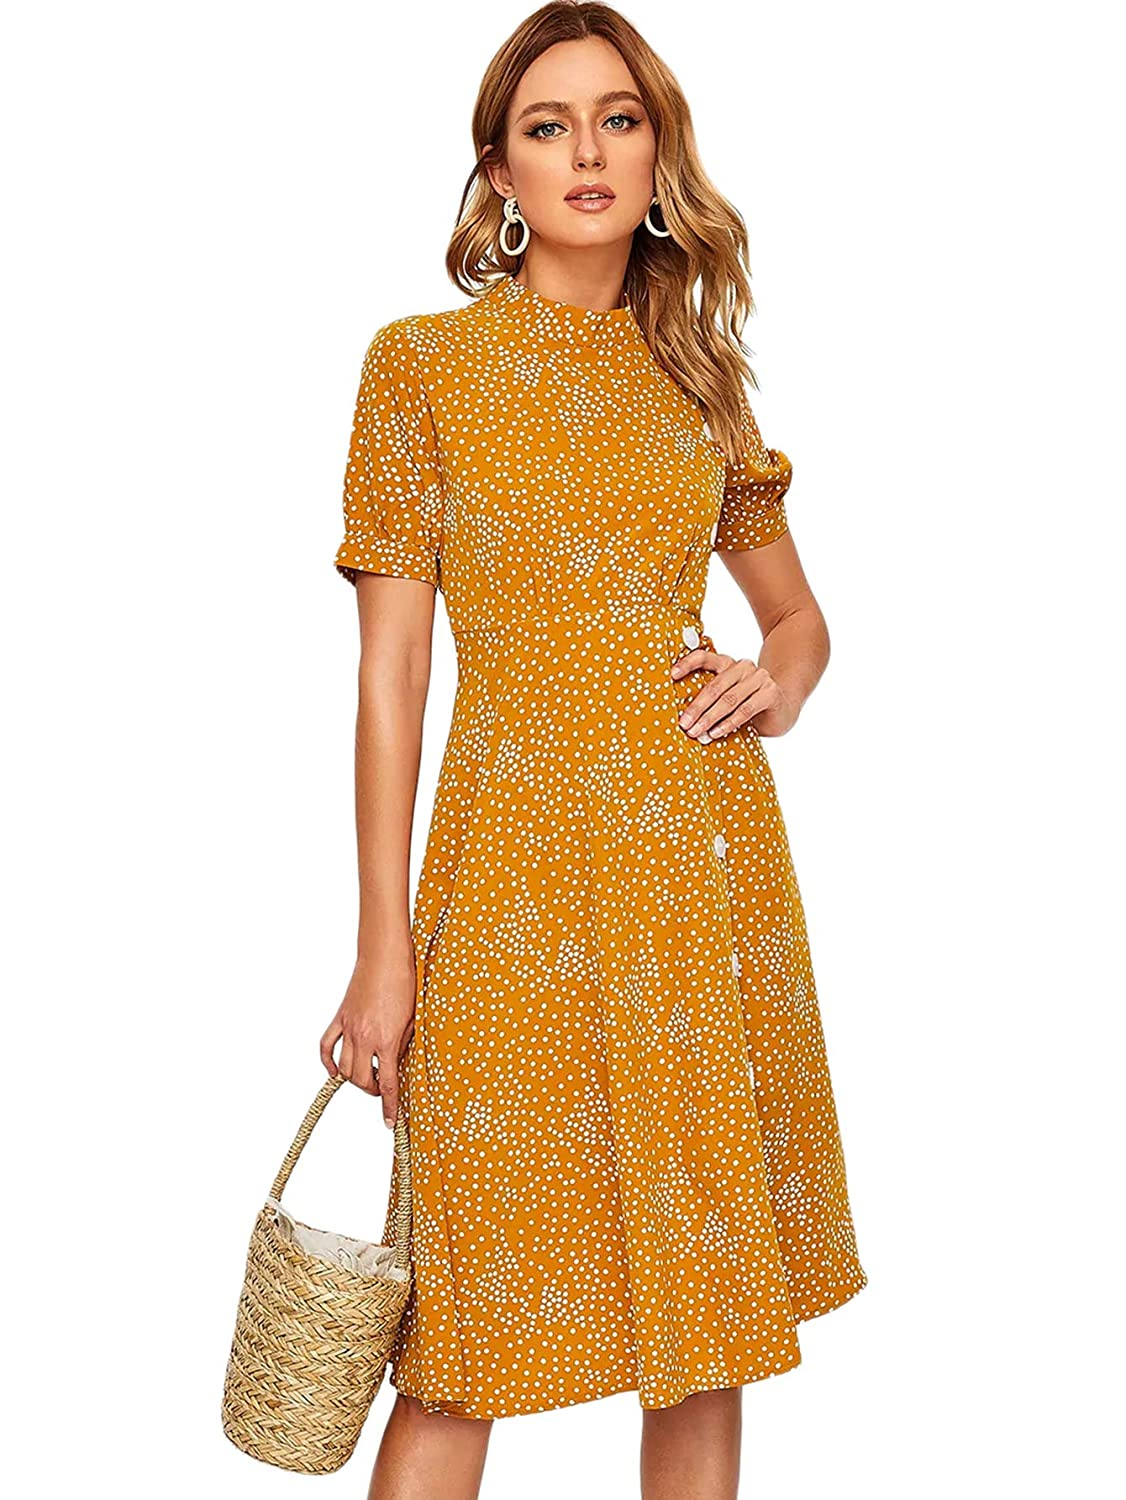 500 Vintage Style Dresses for Sale | Vintage Inspired Dresses SheIn Womens Casual Short Sleeve Polka Dot Button A Line Flare Midi Swing Dress $23.99 AT vintagedancer.com